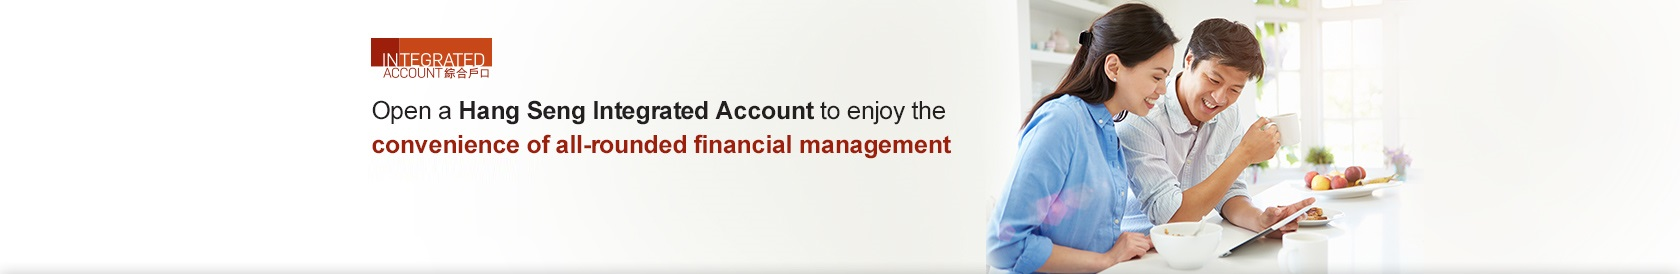 Open a Hang Seng Integrated Account to enjoy the convenience of all-rounded financial management